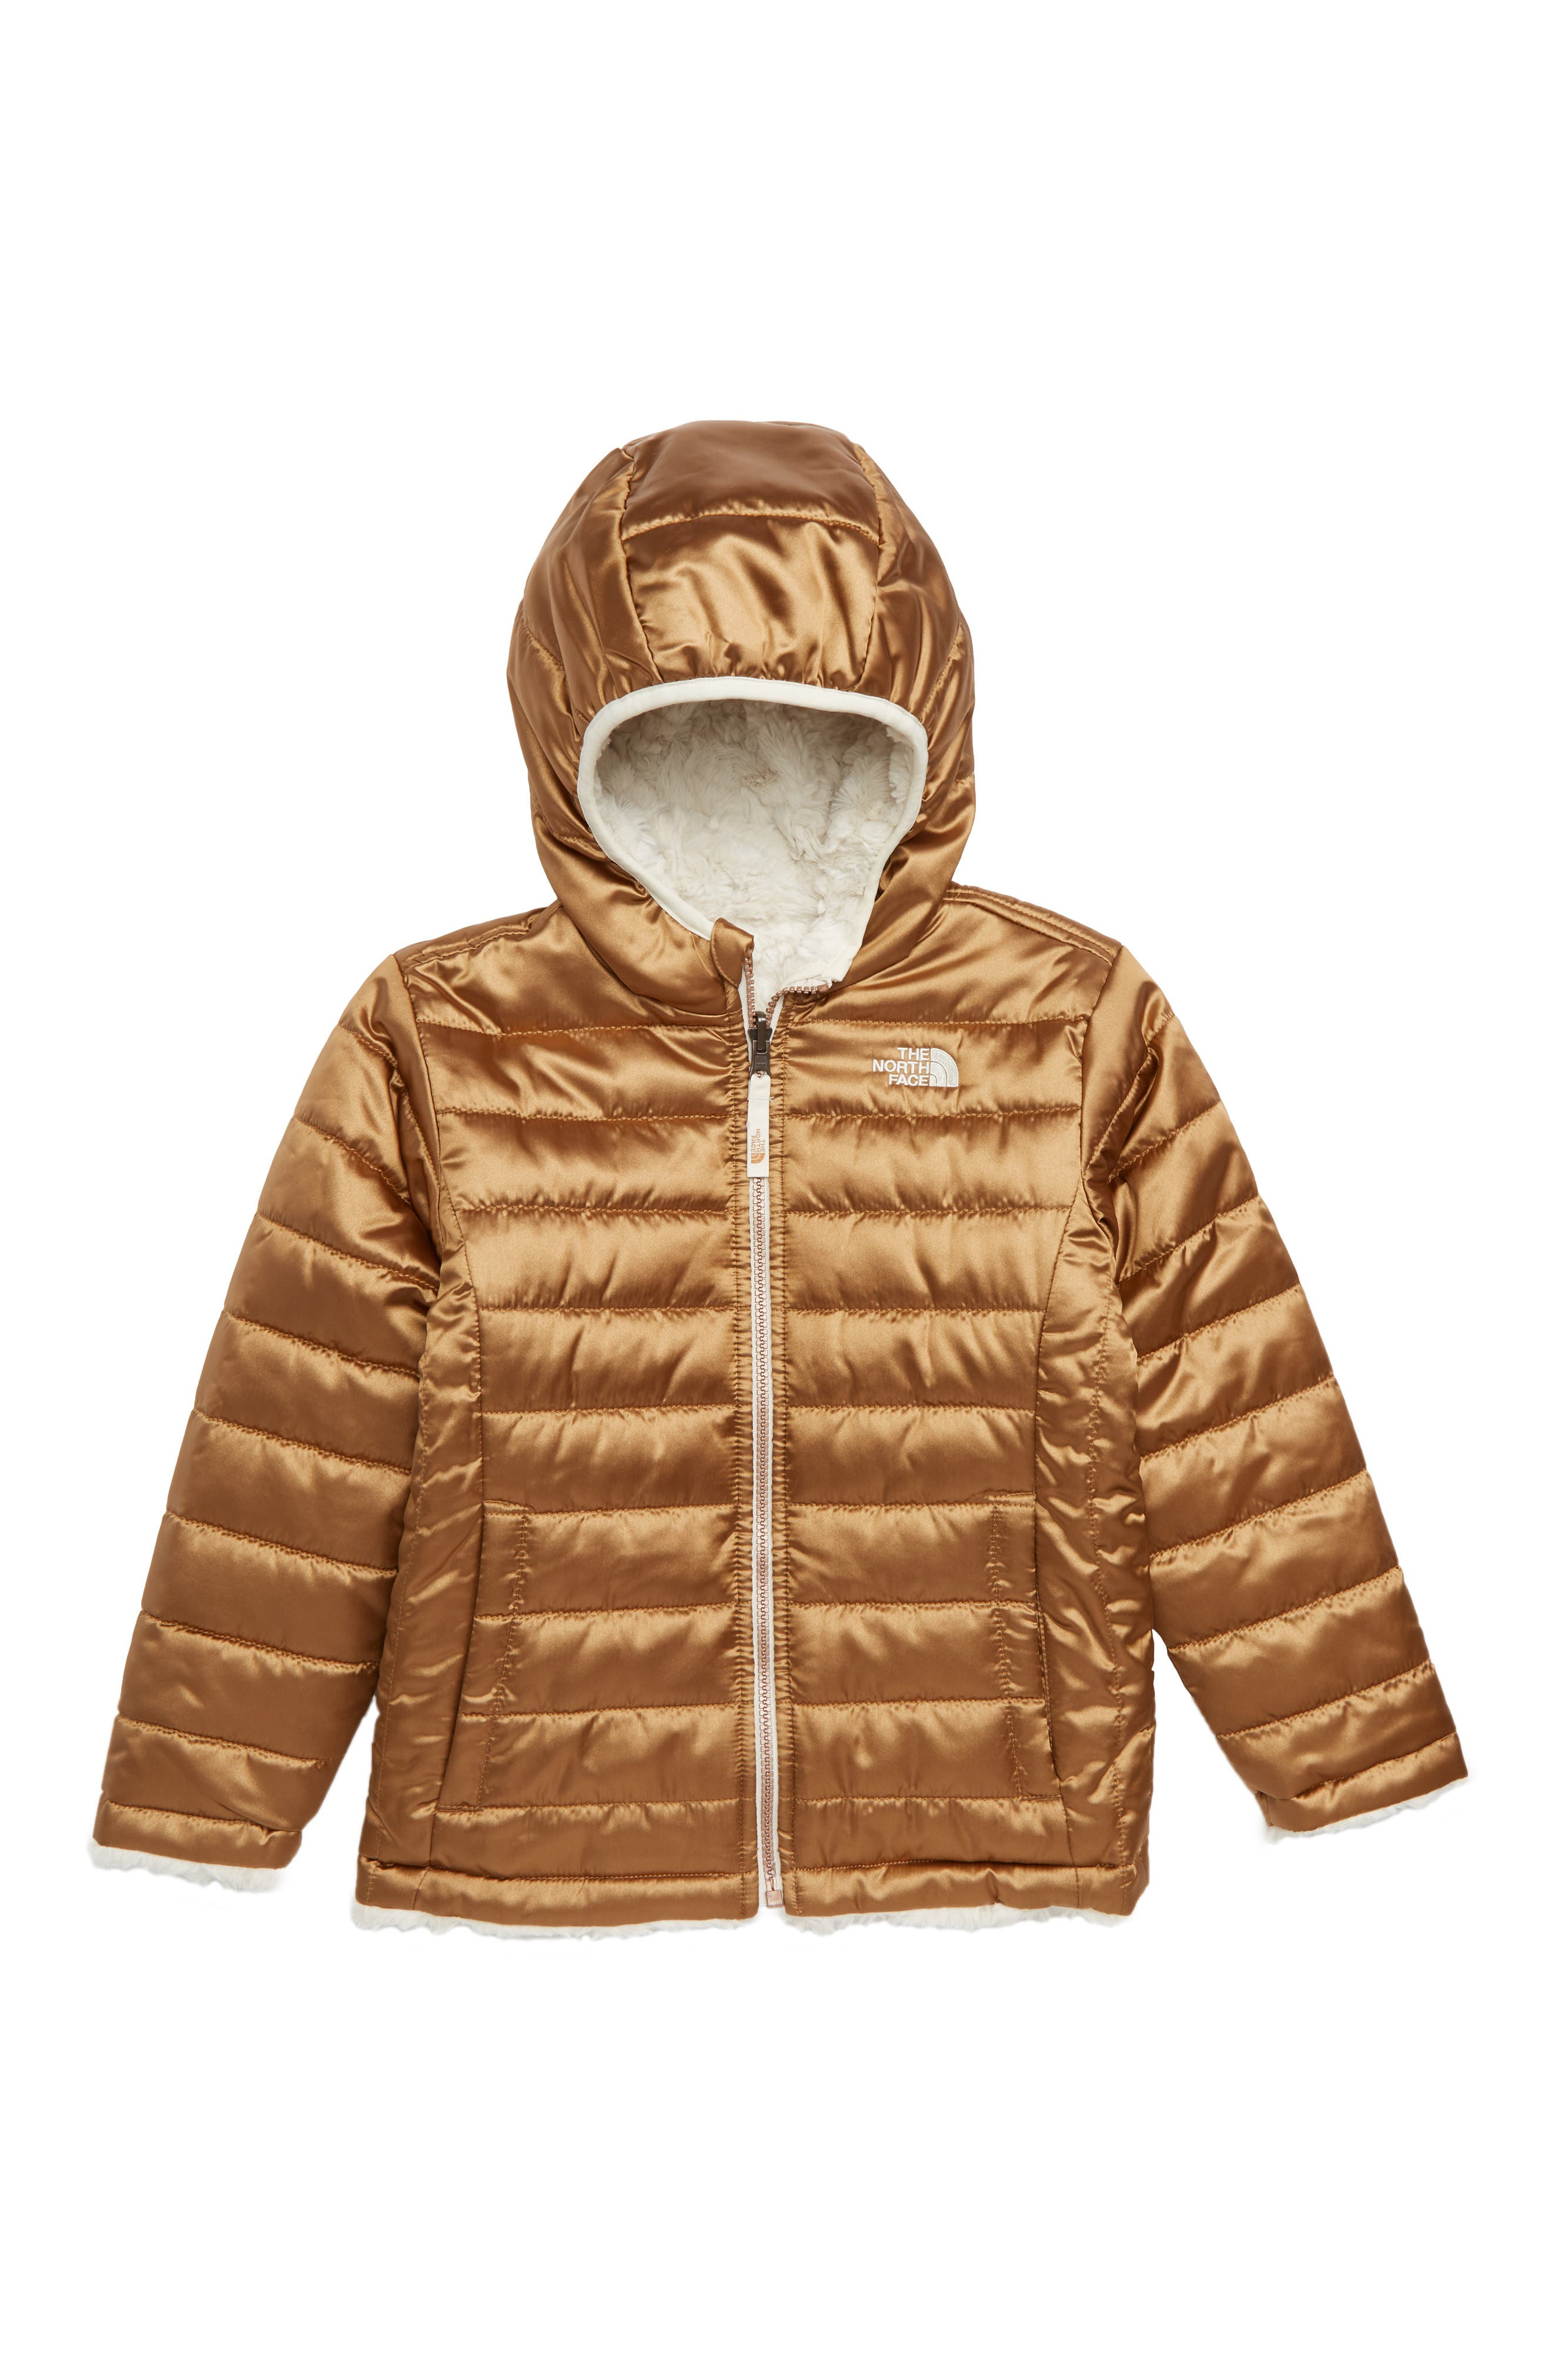 Mossbud Reversible Water Repellent Jacket,                             Main thumbnail 1, color,                             METALLIC COPPER